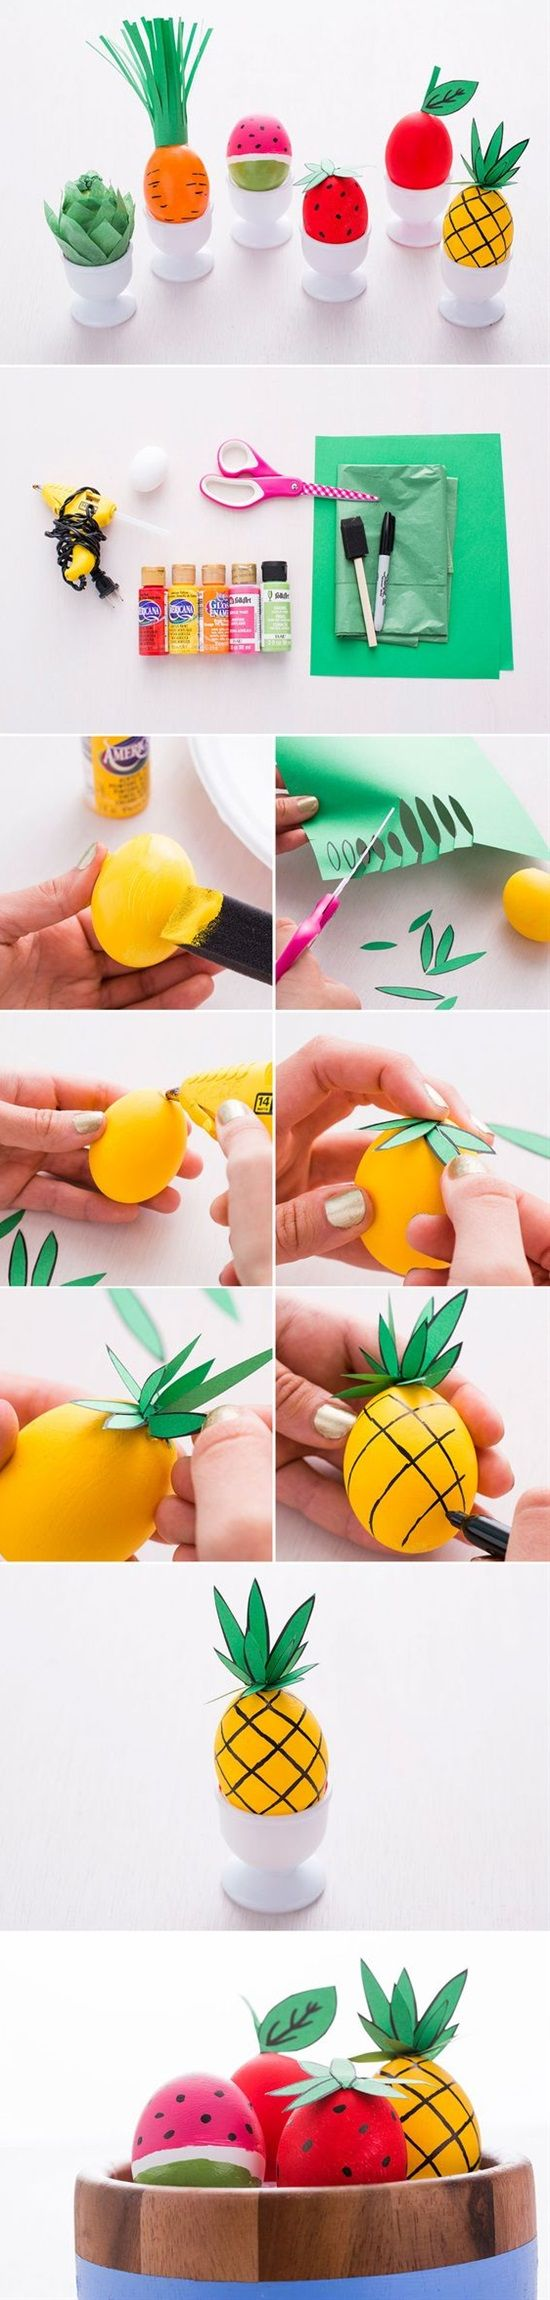 With Easter around the corner, it's time to show your creativity and skills when it comes to decorating Easter eggs. Here is our collection of the best and the easiest decorations you can try out this year.